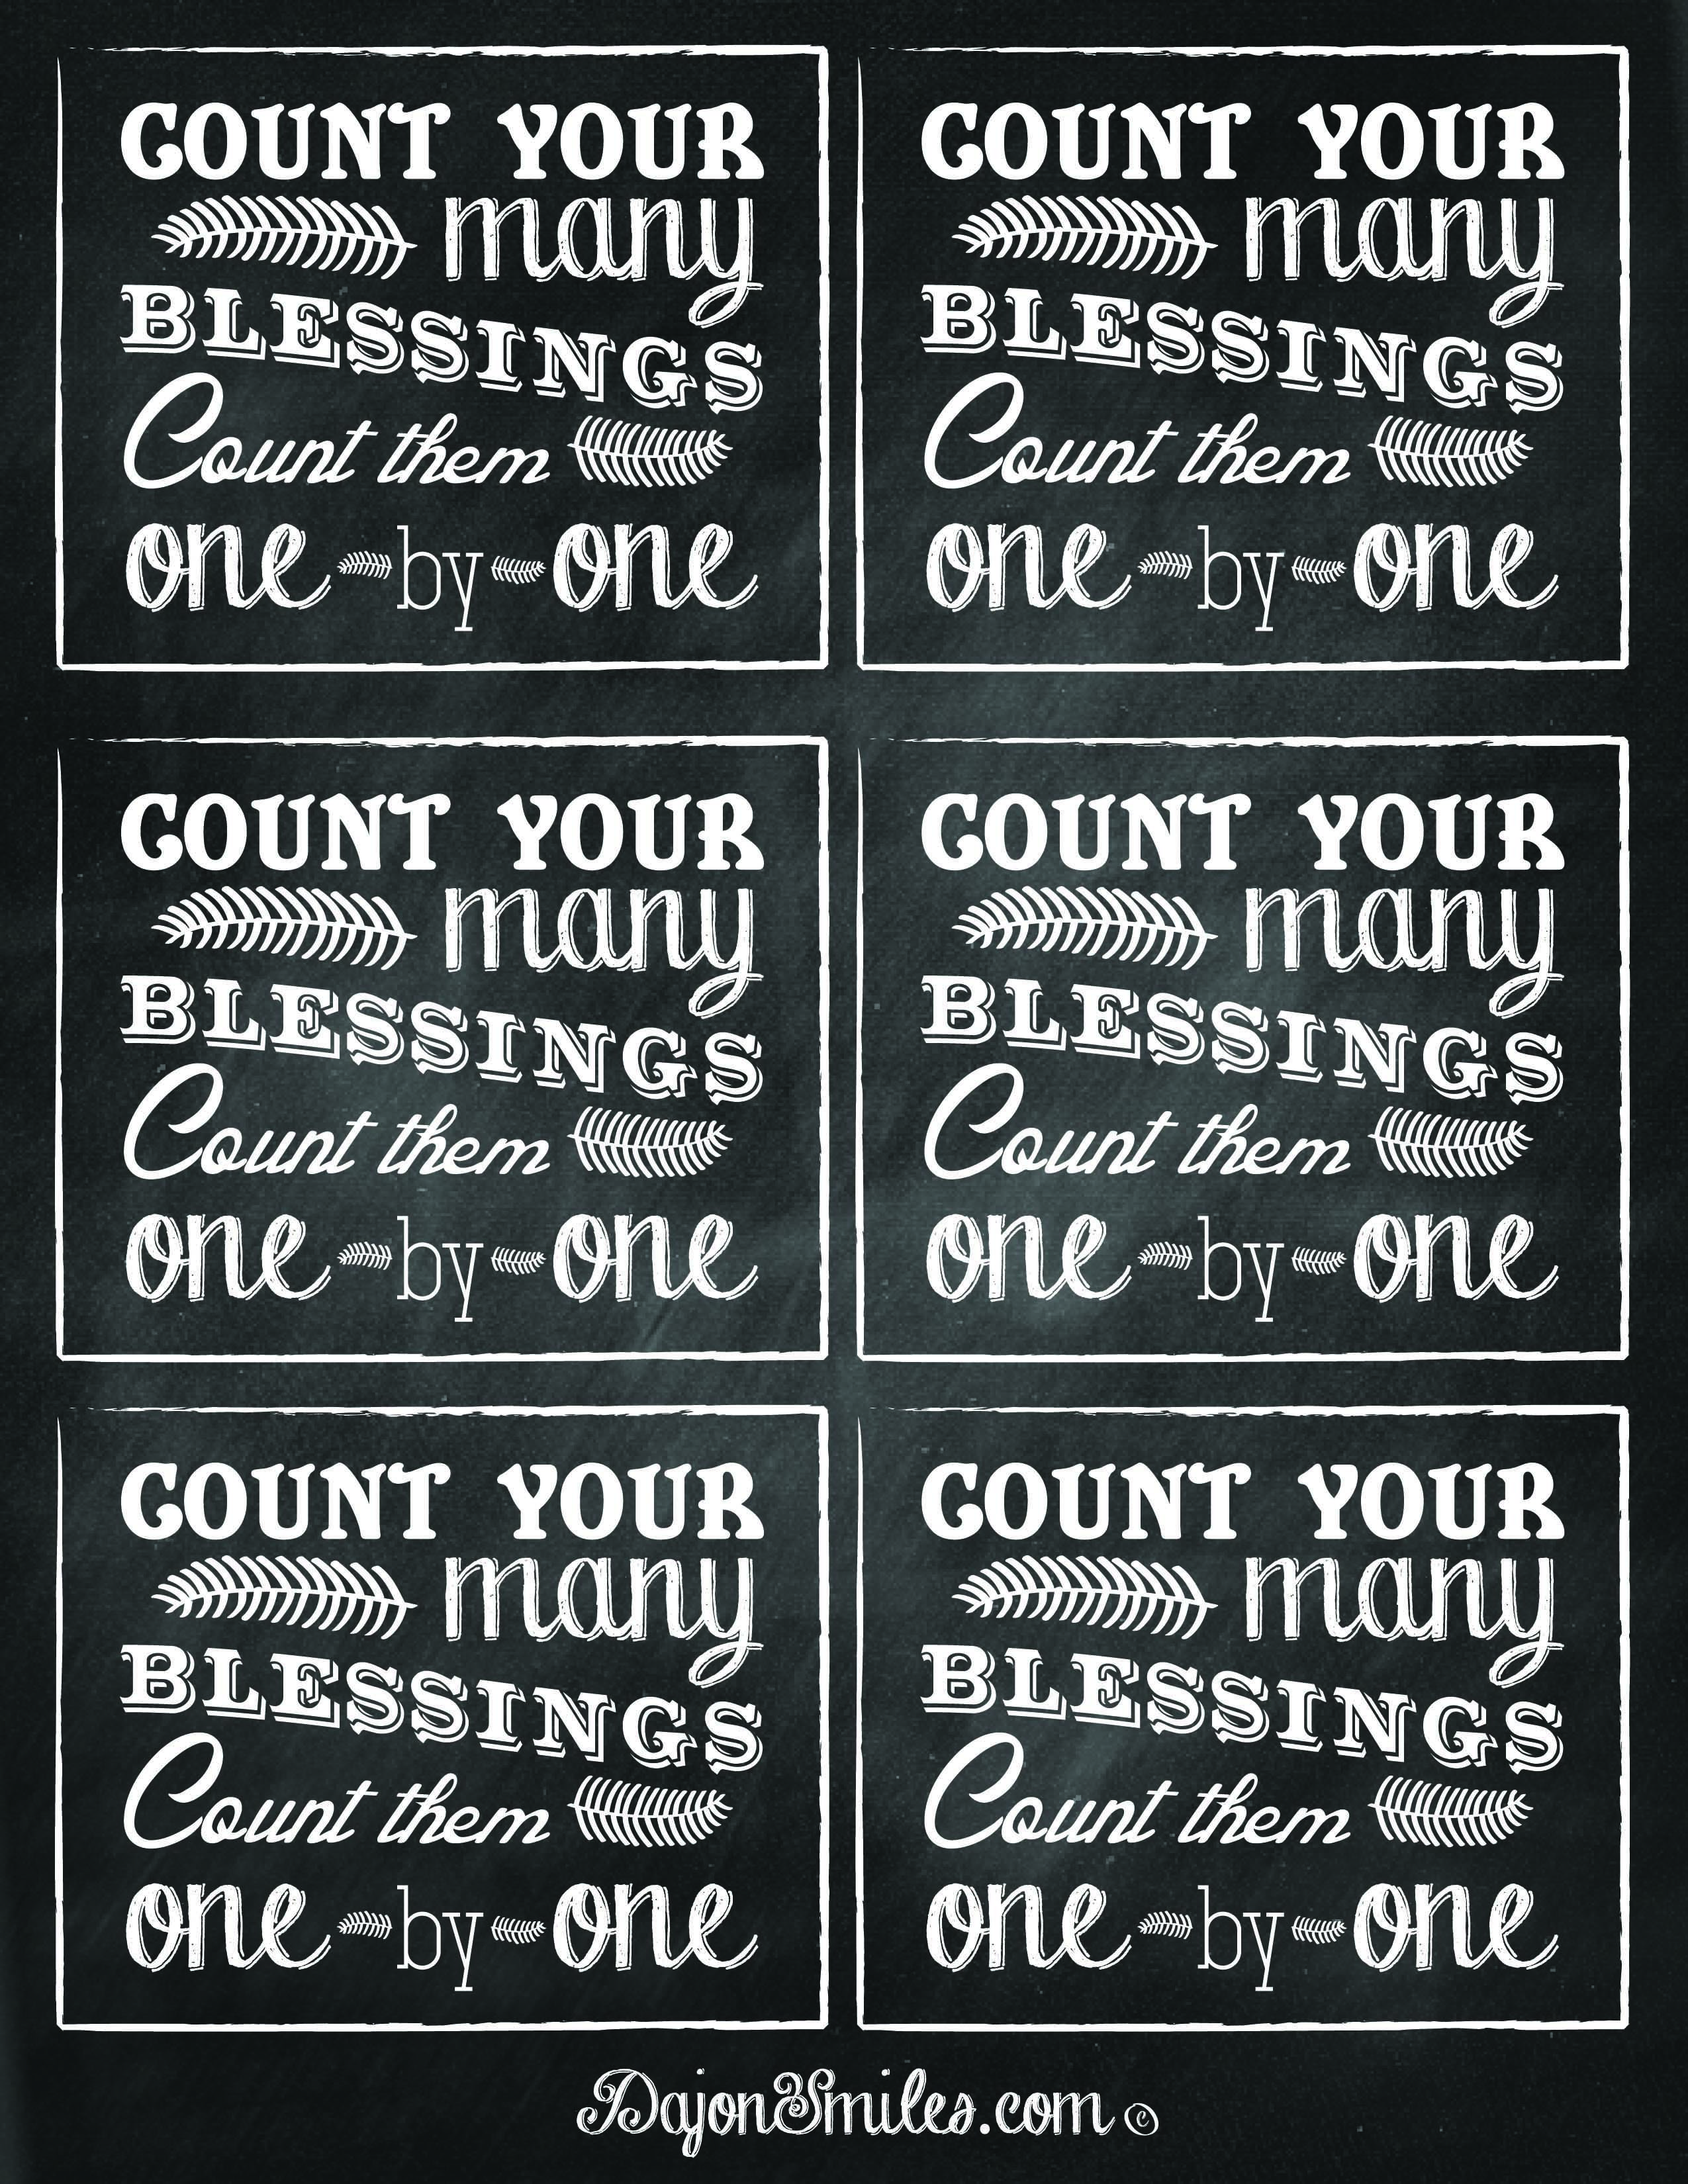 Free Printables To Add To Blessing Jar Ts Count Your